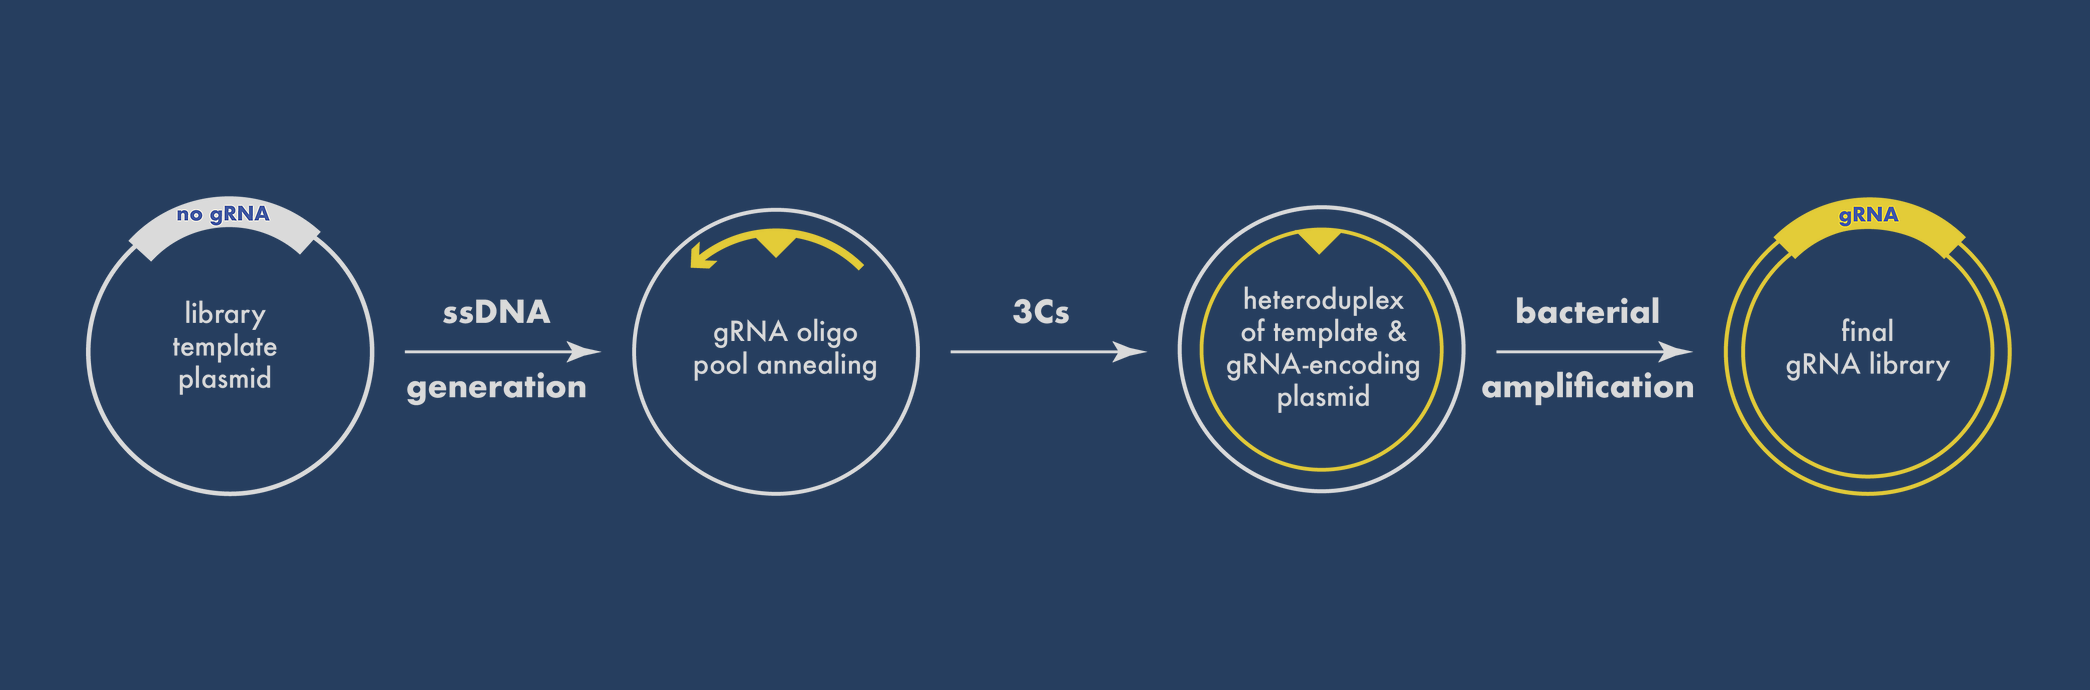 3Cs CRISPR screening preparation with pooled DNA oligos